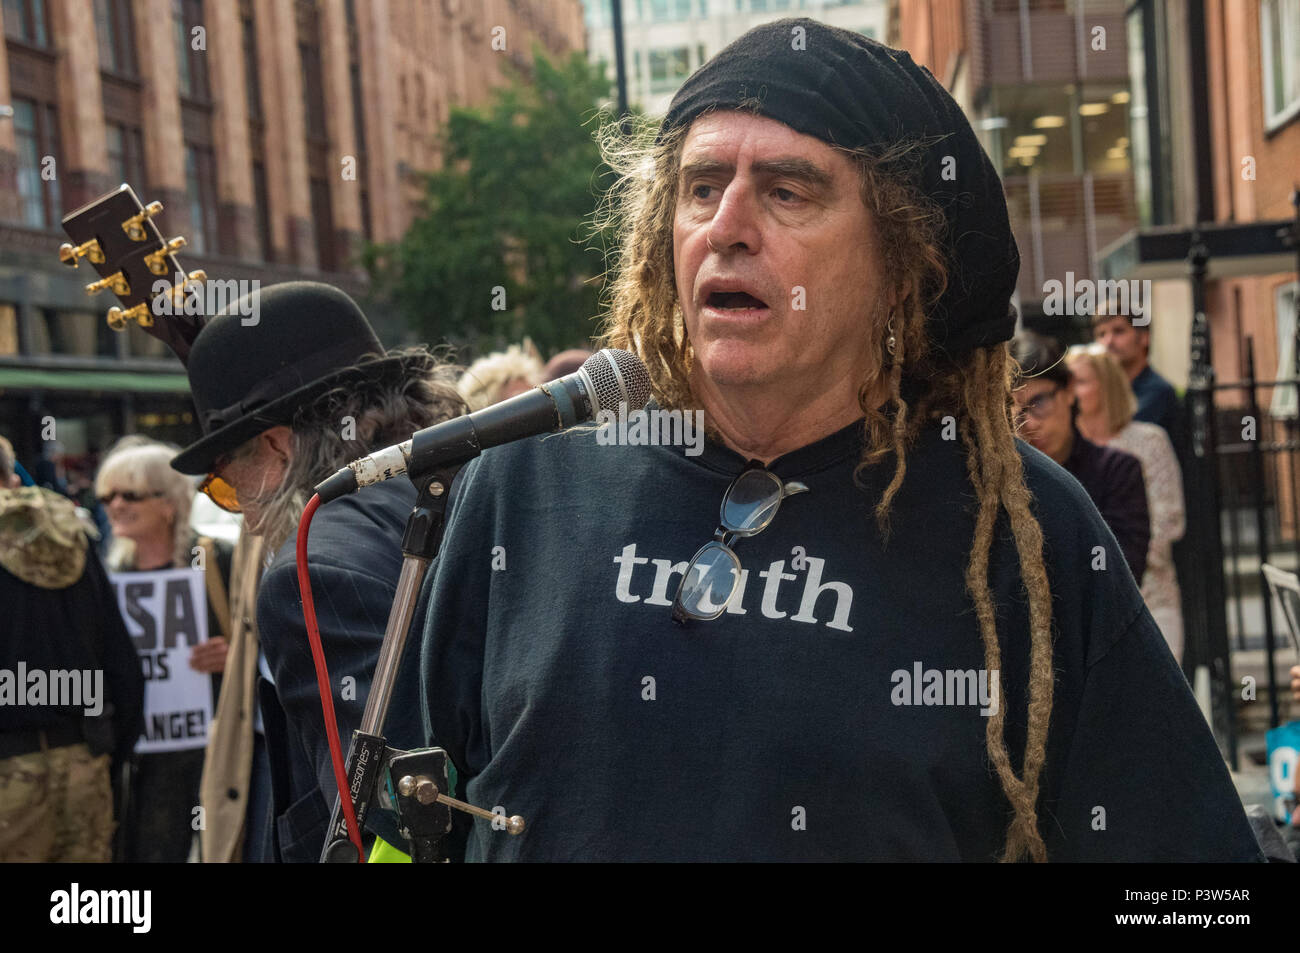 London, UK. 19th June 2018. Ciaron O'Reilly introduces the speakers and singers at the rally outside the Ecuadorian Embassy in London calling for Julian Assange to be allowed safe passage to the place of his choice to mark six years since he was given asylum there. They called for the UK authorities to allow him to leave the embassy and go to the country of his choice without being arrested. Credit: Peter Marshall/Alamy Live News - Stock Image